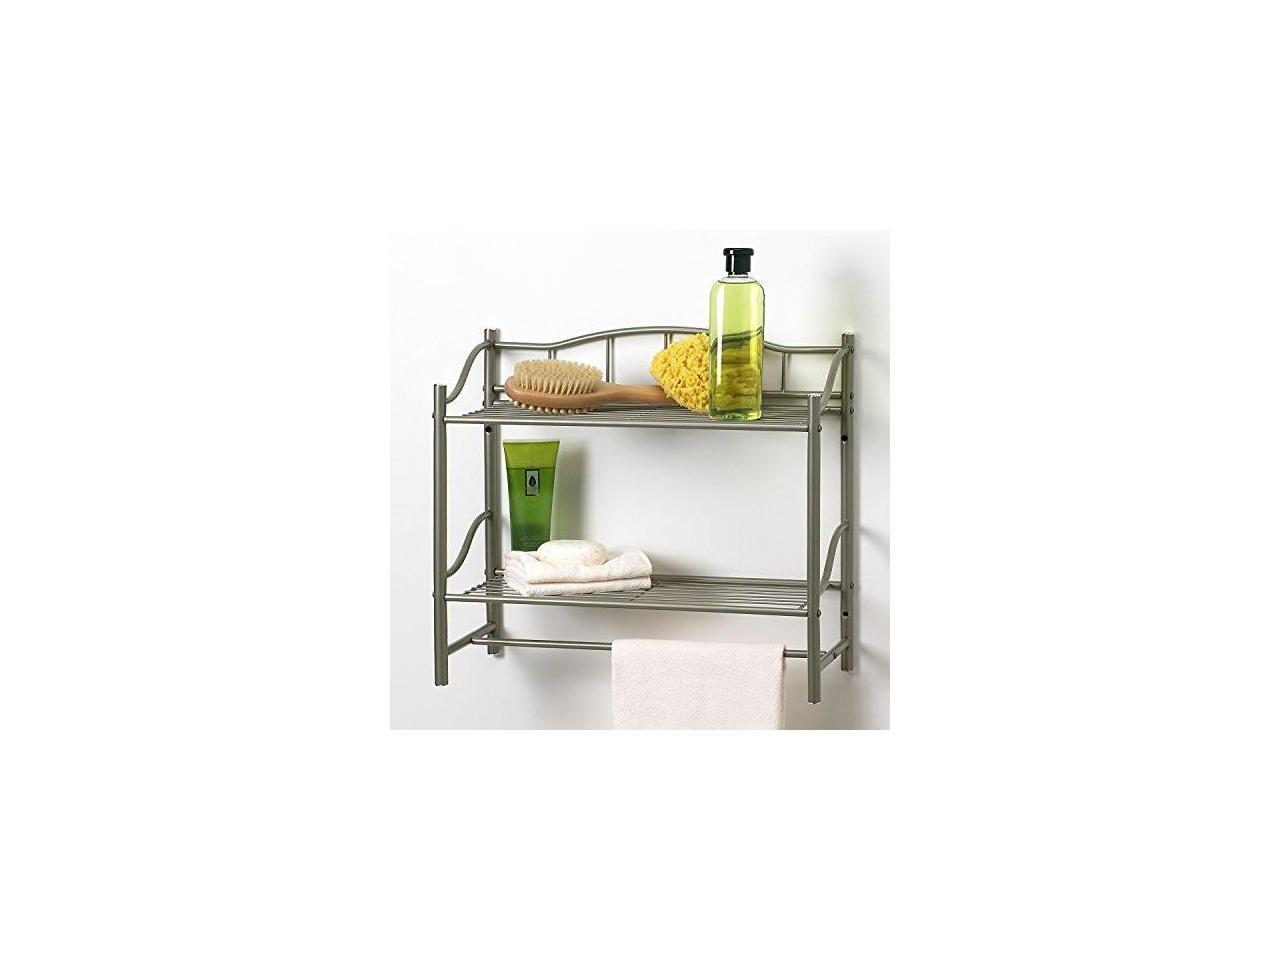 Pearl Nickel Finish Creative Bath Products Complete Collection 2 Shelf Wall Organizer with Towel Bar